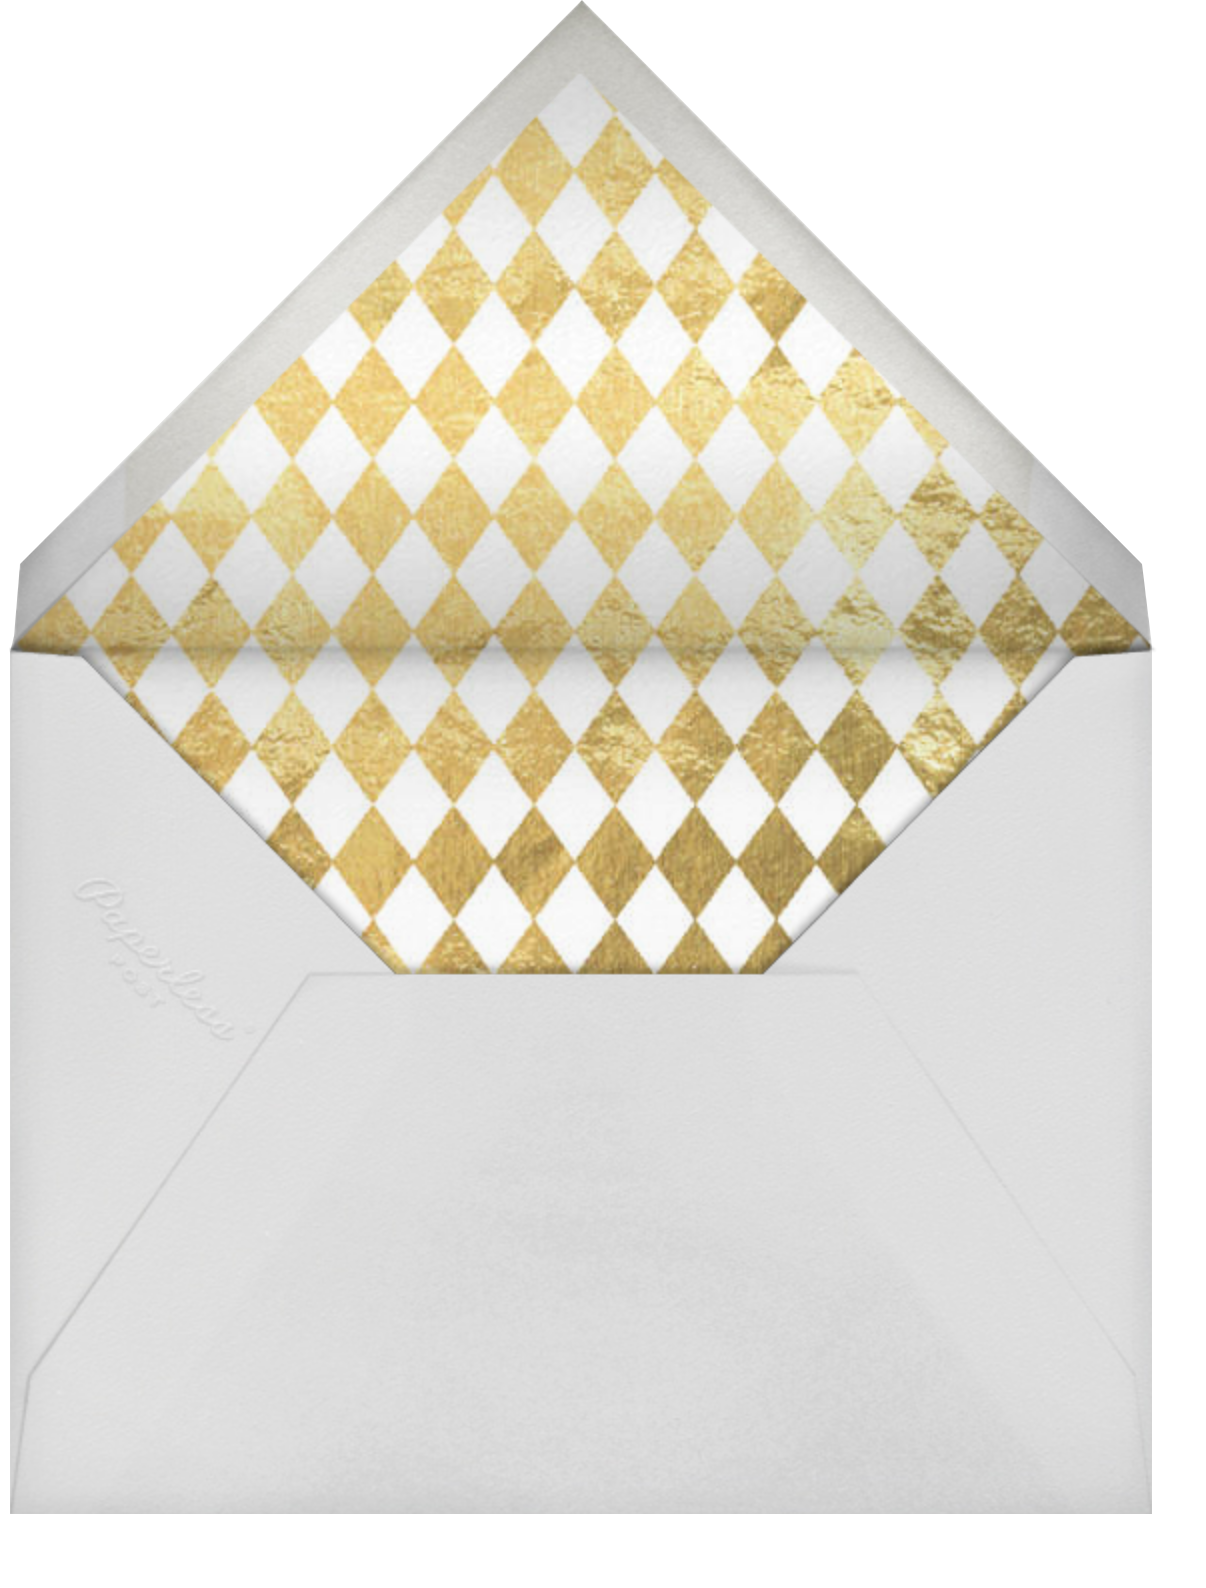 Gold Edge (Midnight) - Paperless Post - null - envelope back